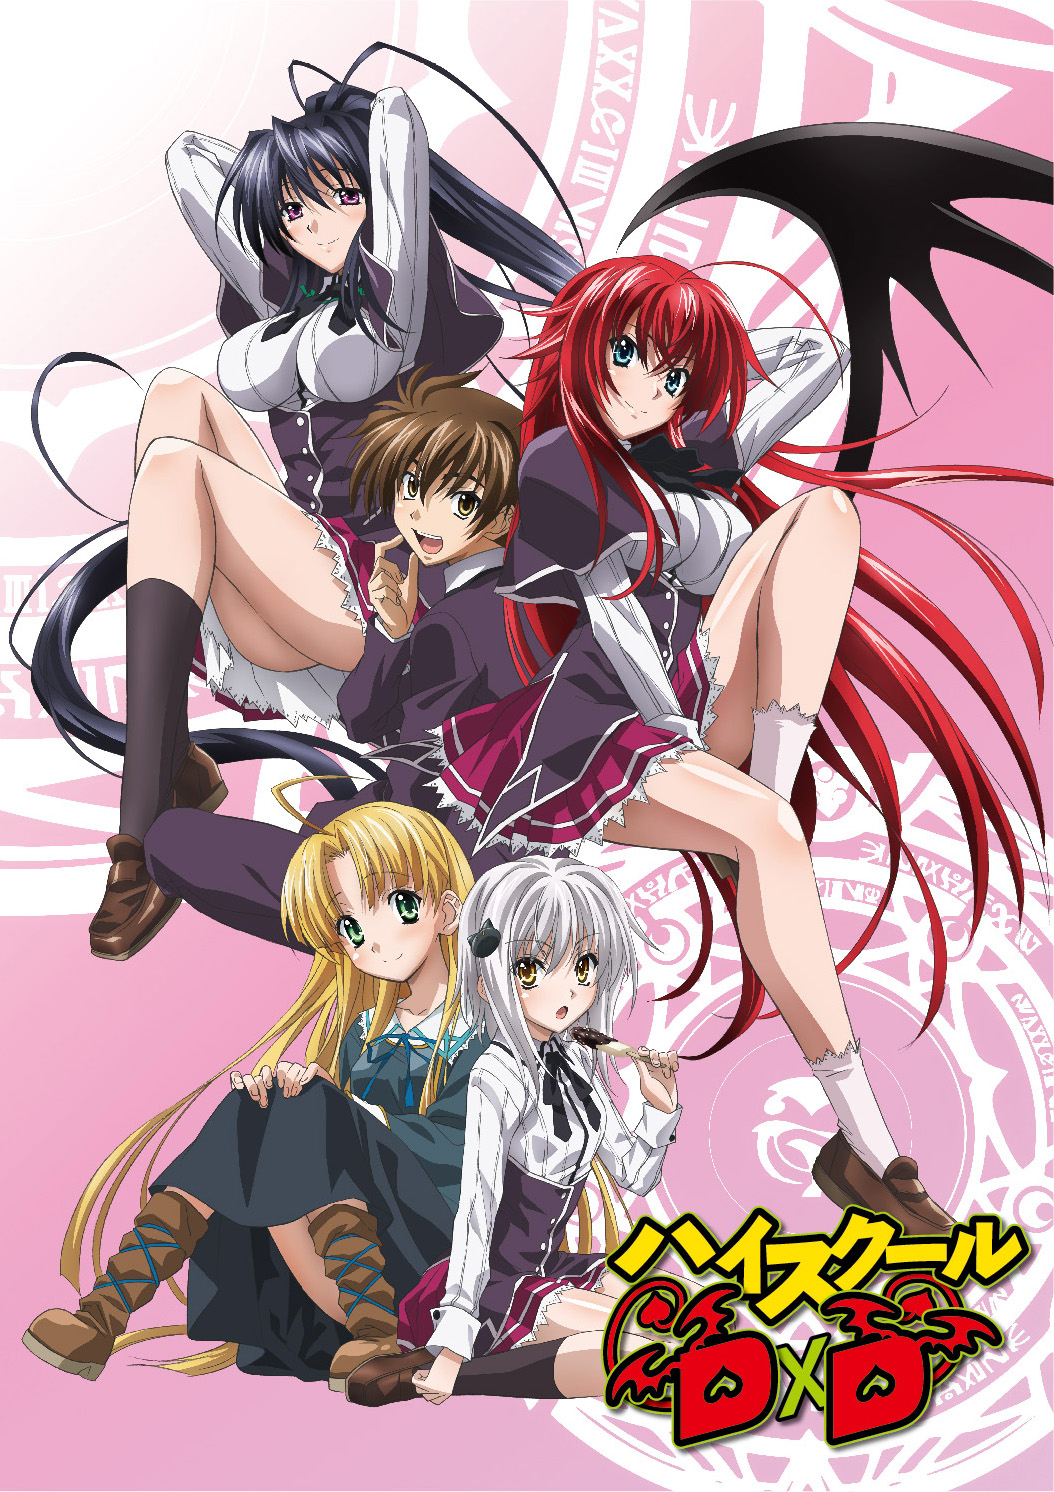 HentaiStream.com High School DxD Episode 8